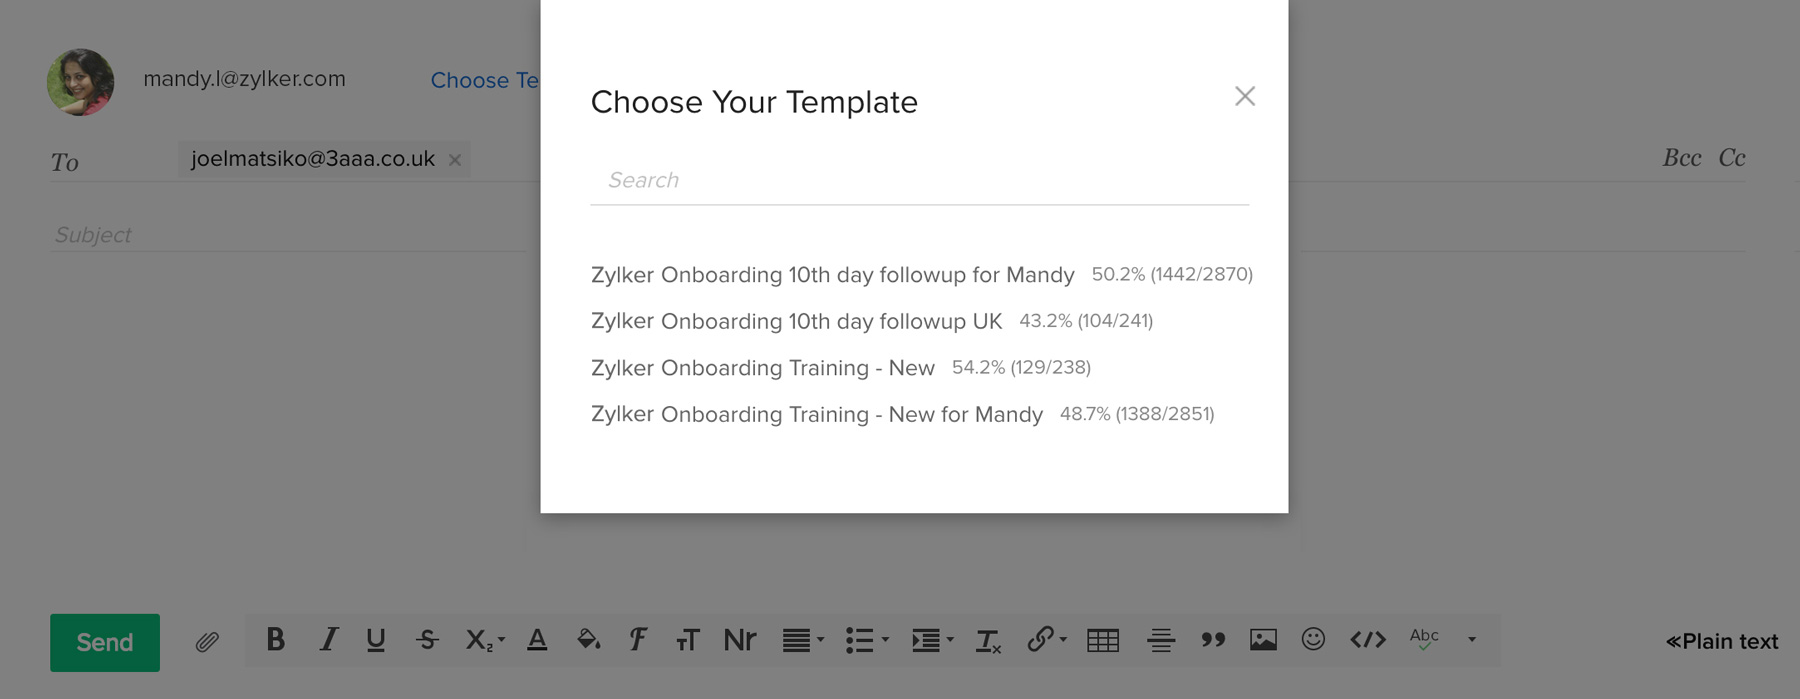 Email Management | Multichannel CRM | Zoho CRM